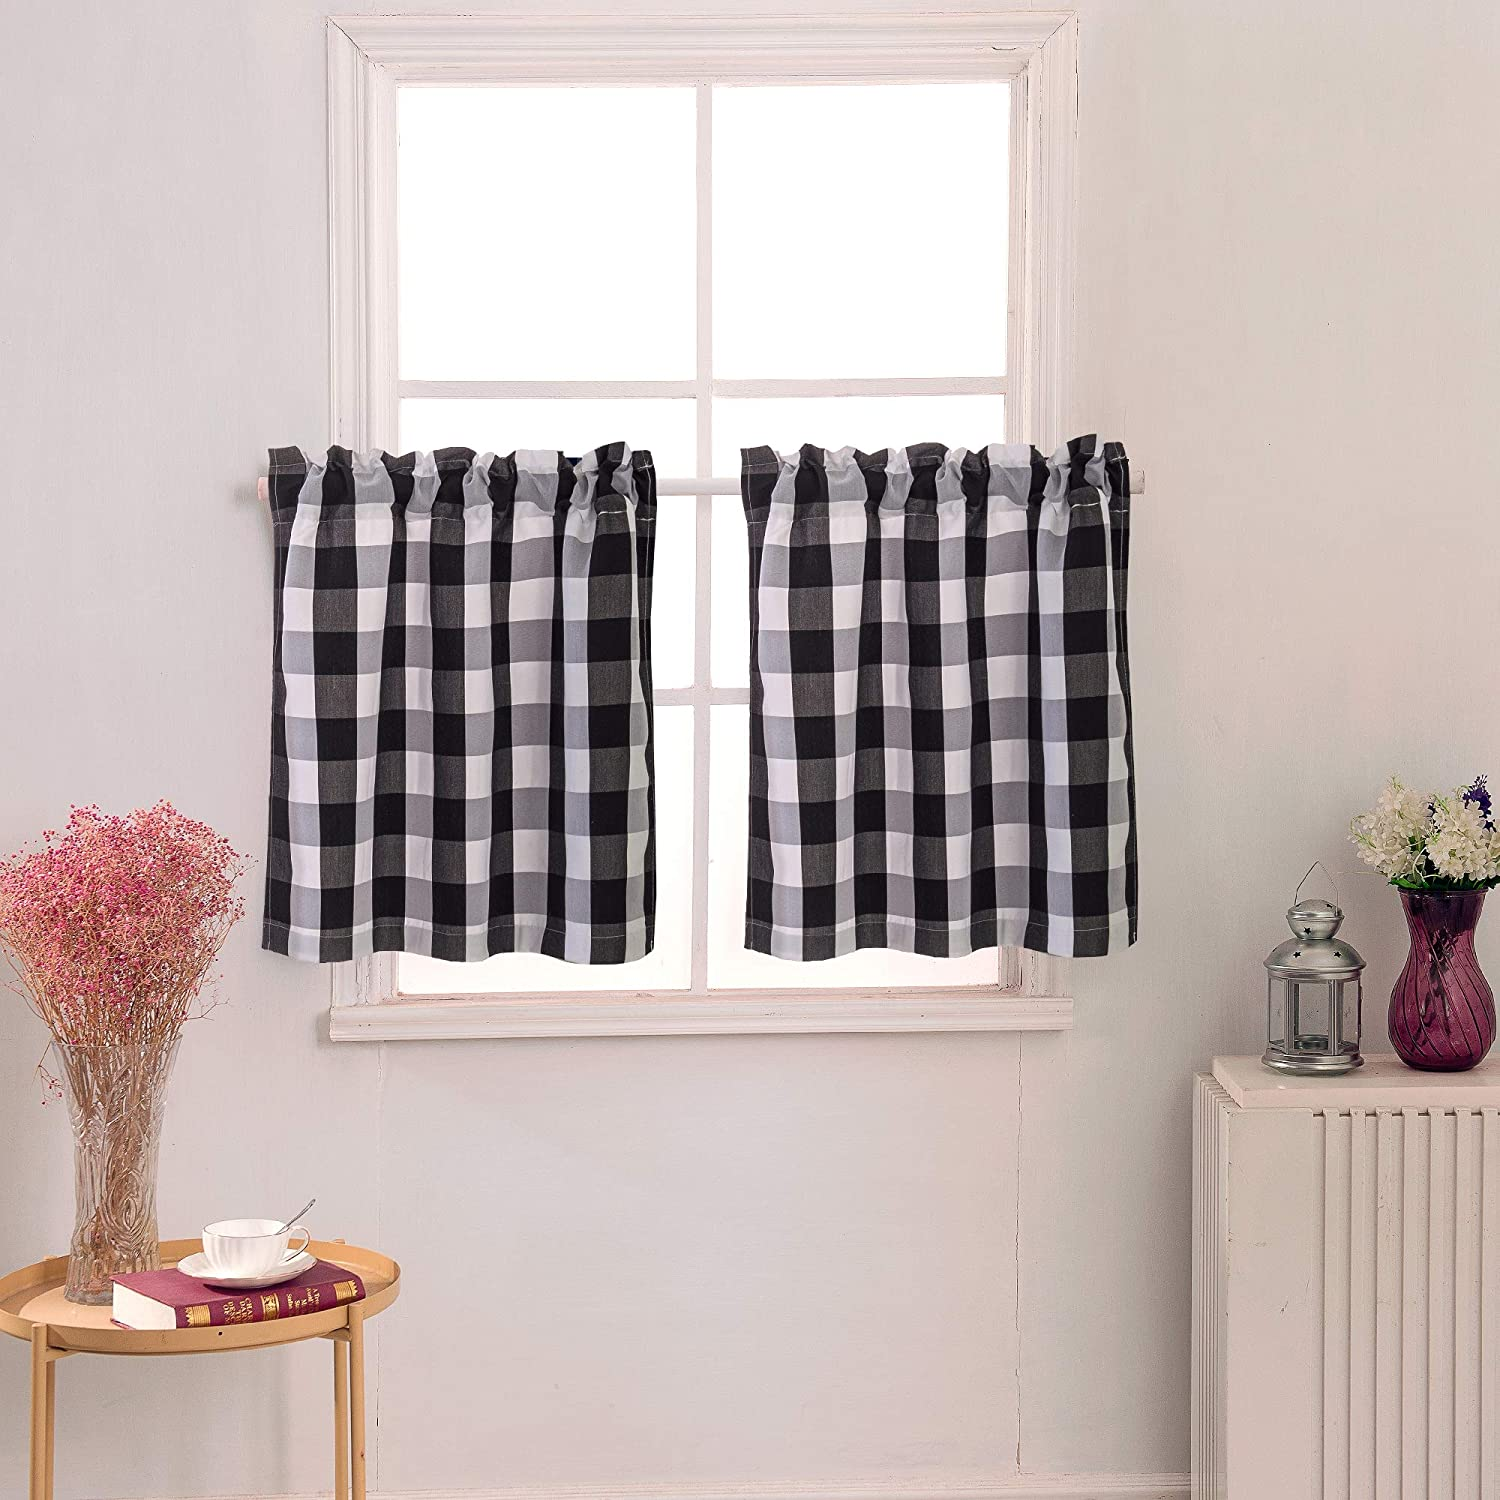 Annlaite Buffalo Checker 24 Inches Long Curtains for Kitchen Small Cafe Curtains for Window Treatment Set 2 Panels Black